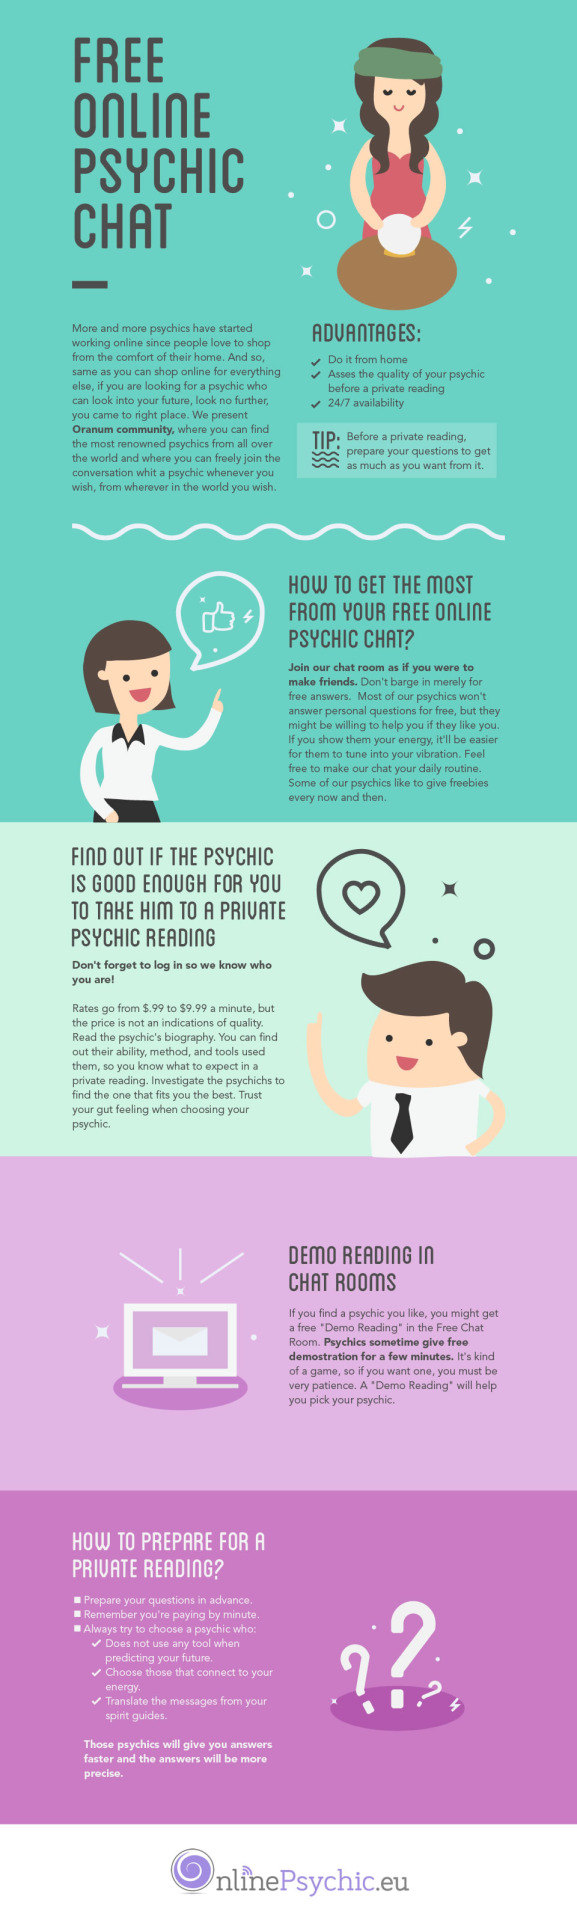 Free Online Psychic Chat [infographic]. Innovative Small Business Ideas. Microsoft Domain Hosting Parts Of A Palm Tree. Residential Alarm Company Brink Home Security. Credit Check Companies For Businesses. American Medical Insurance Plumbing El Cajon. Start An Online Store For Free. Project Management Online Breast Cancer Grade. Masters In Secondary Education Online